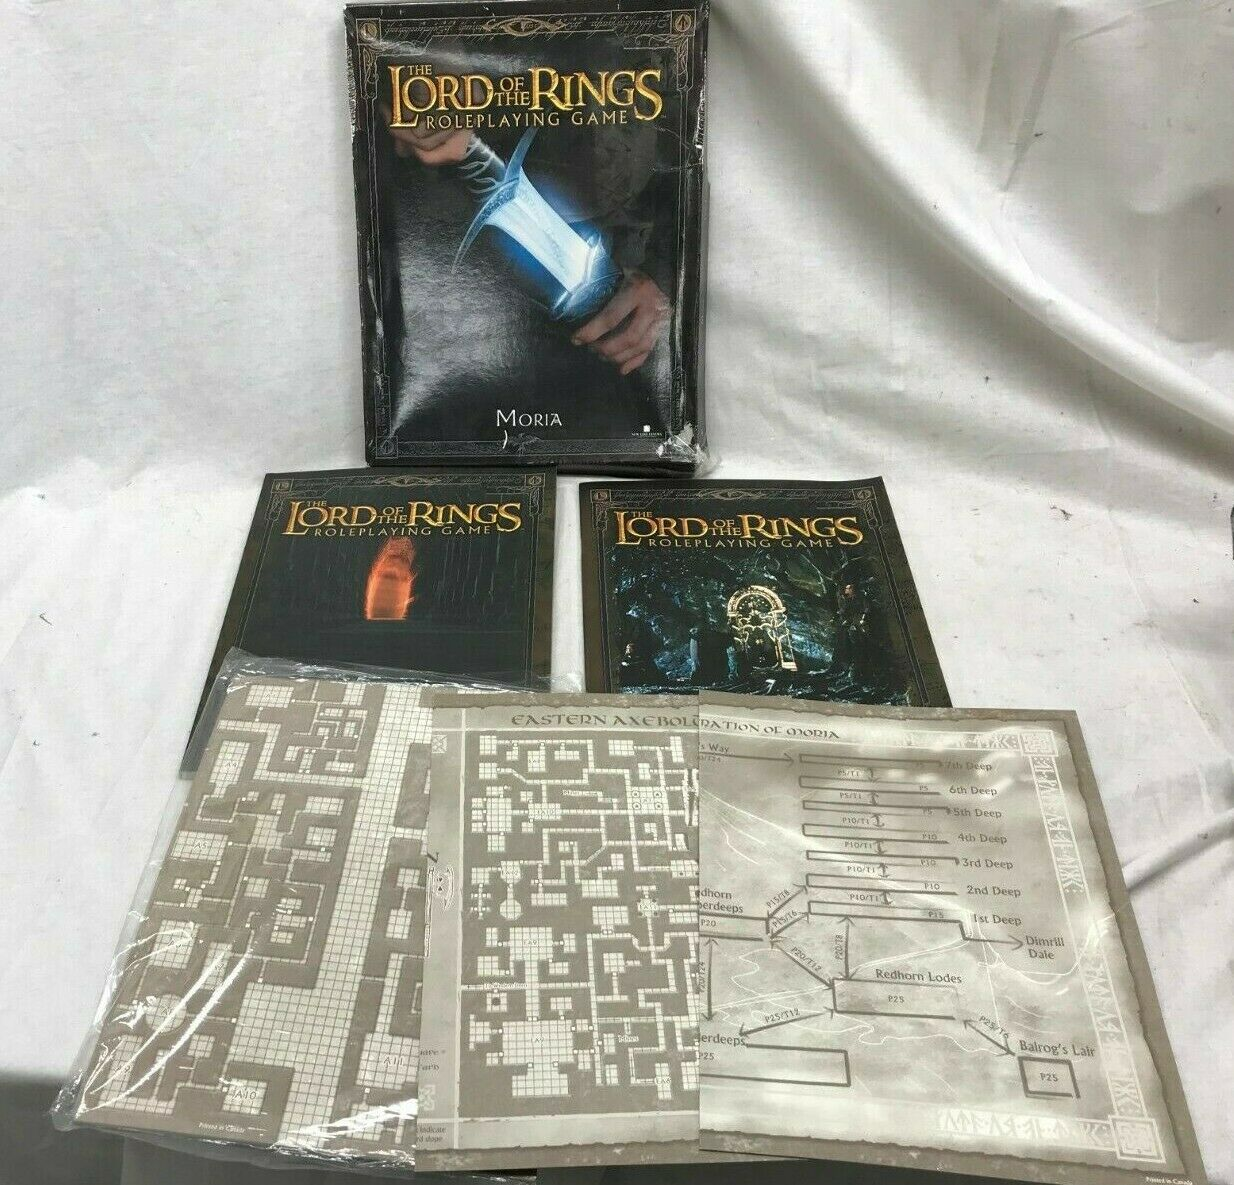 Lord of the Rings Role Playing game books Khazad-Dum dwarves of Middle Earth